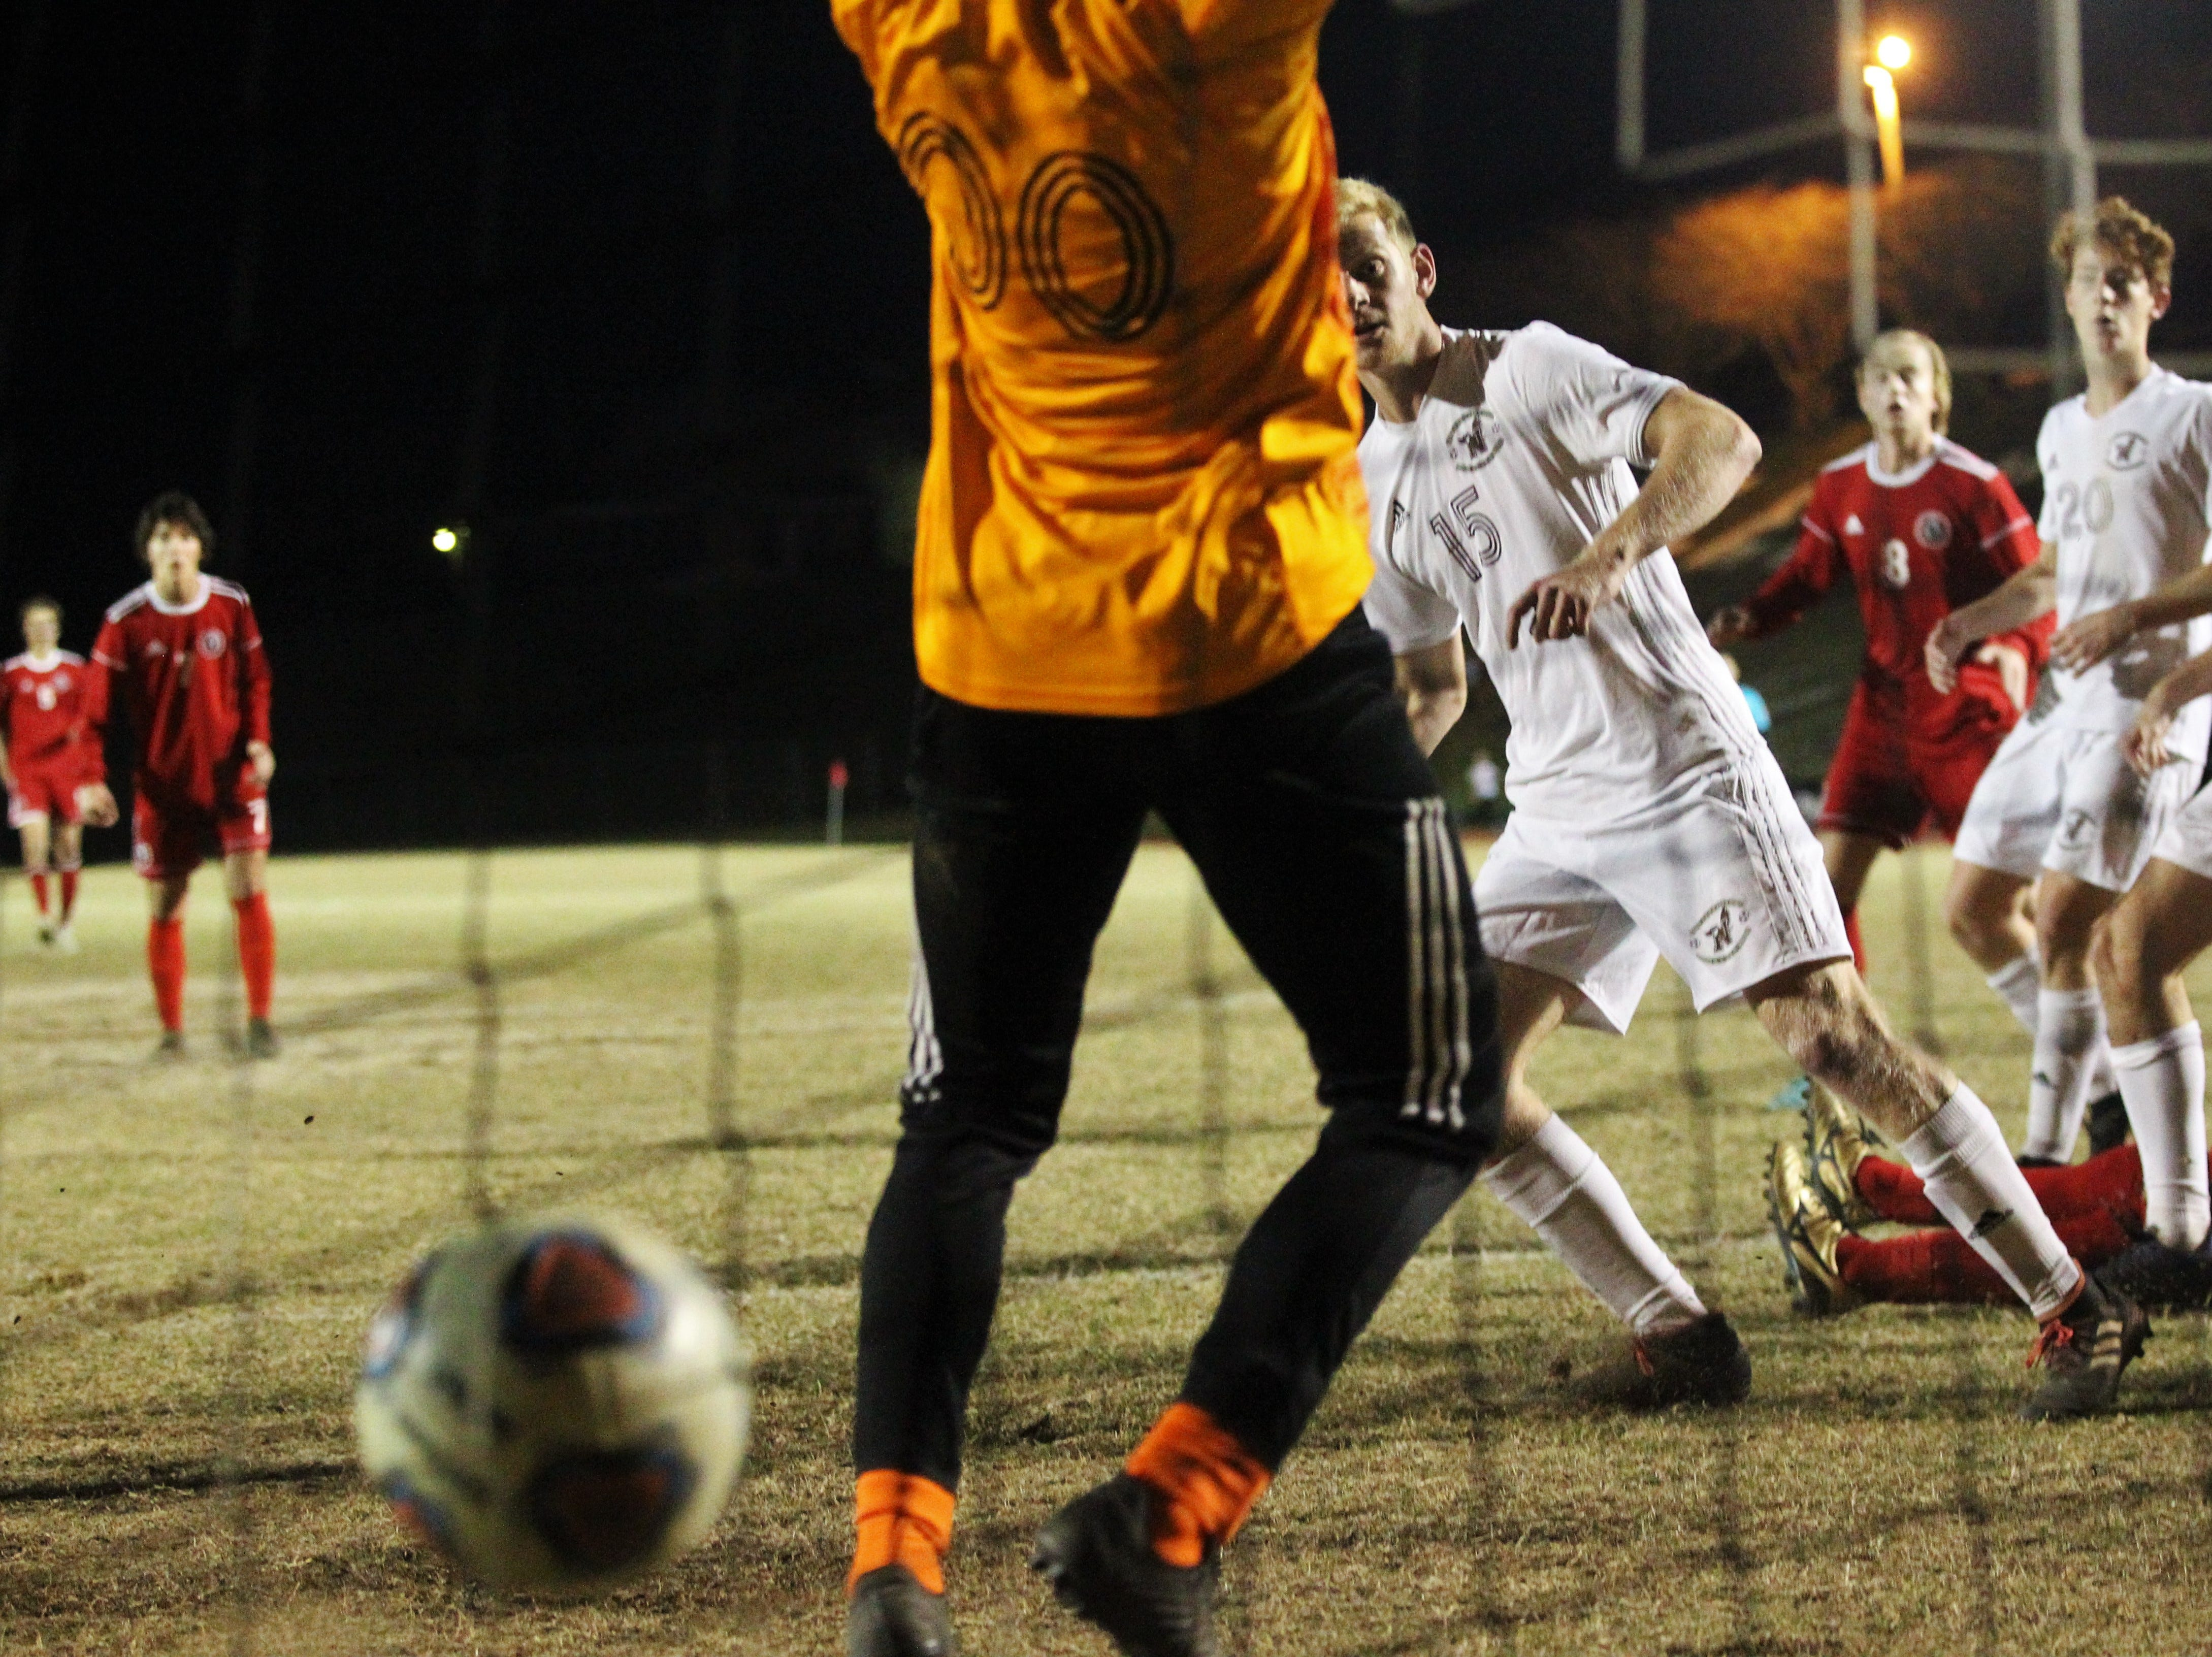 Leon's Sy Fontenot (on ground) scored the game-winning goal in the final minutes as the Lions' boys soccer team beat Niceville 1-0 in a Region 1-4A semifinal on Feb. 9, 2019.